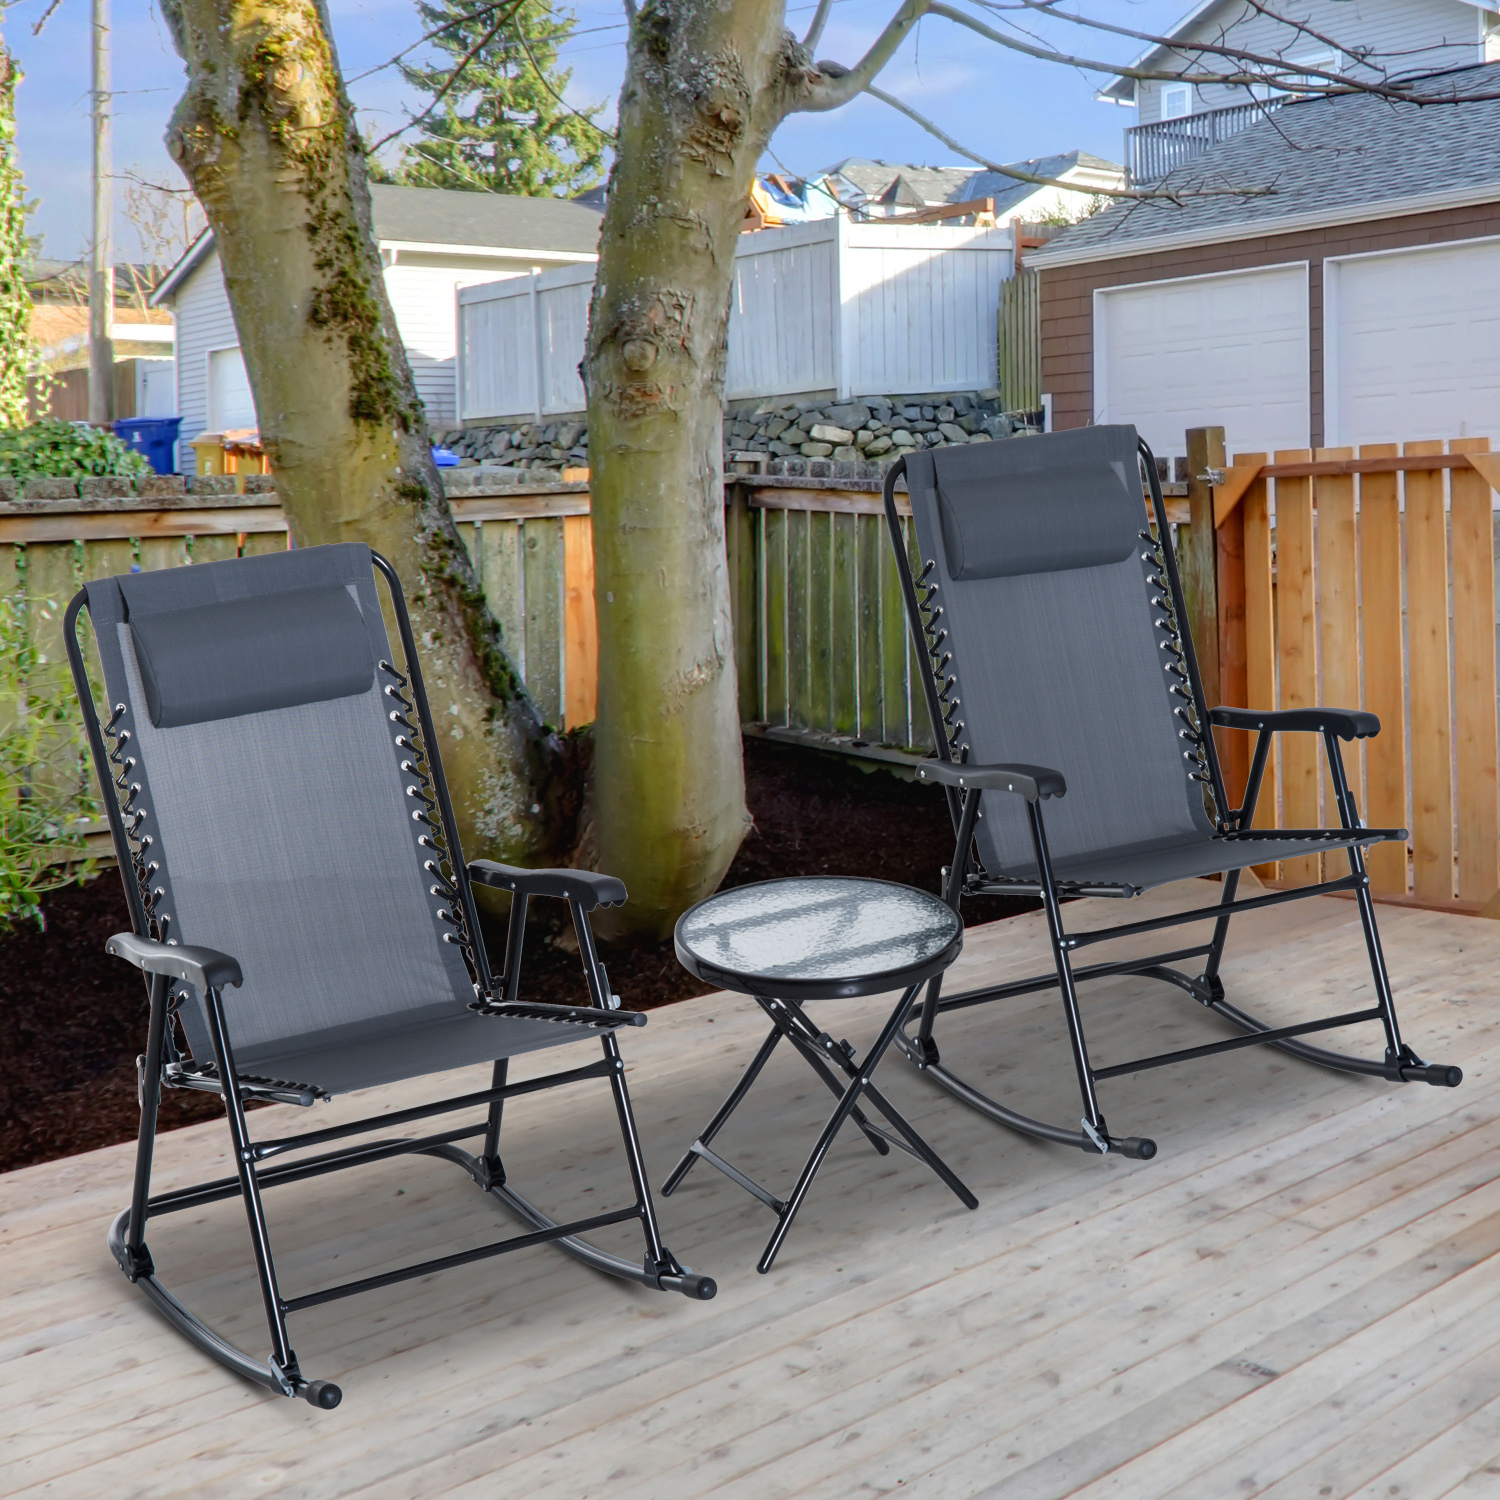 Excellent Details About Outsunny 3 Piece Outdoor Rocking Chair Patio Table Seating Set Rocker Bistro Ibusinesslaw Wood Chair Design Ideas Ibusinesslaworg